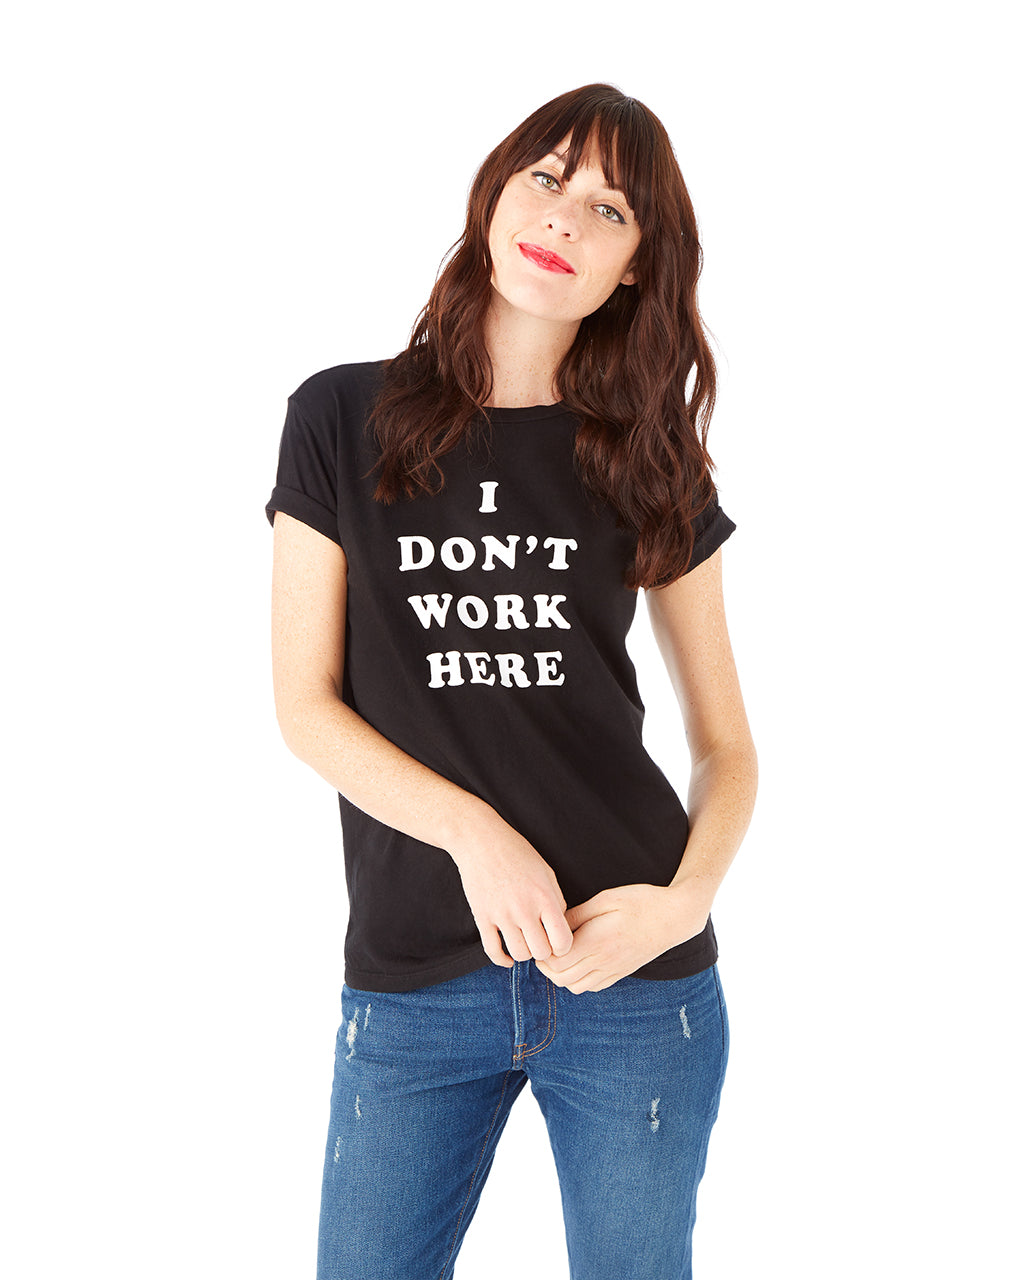 I don't work here tee - black